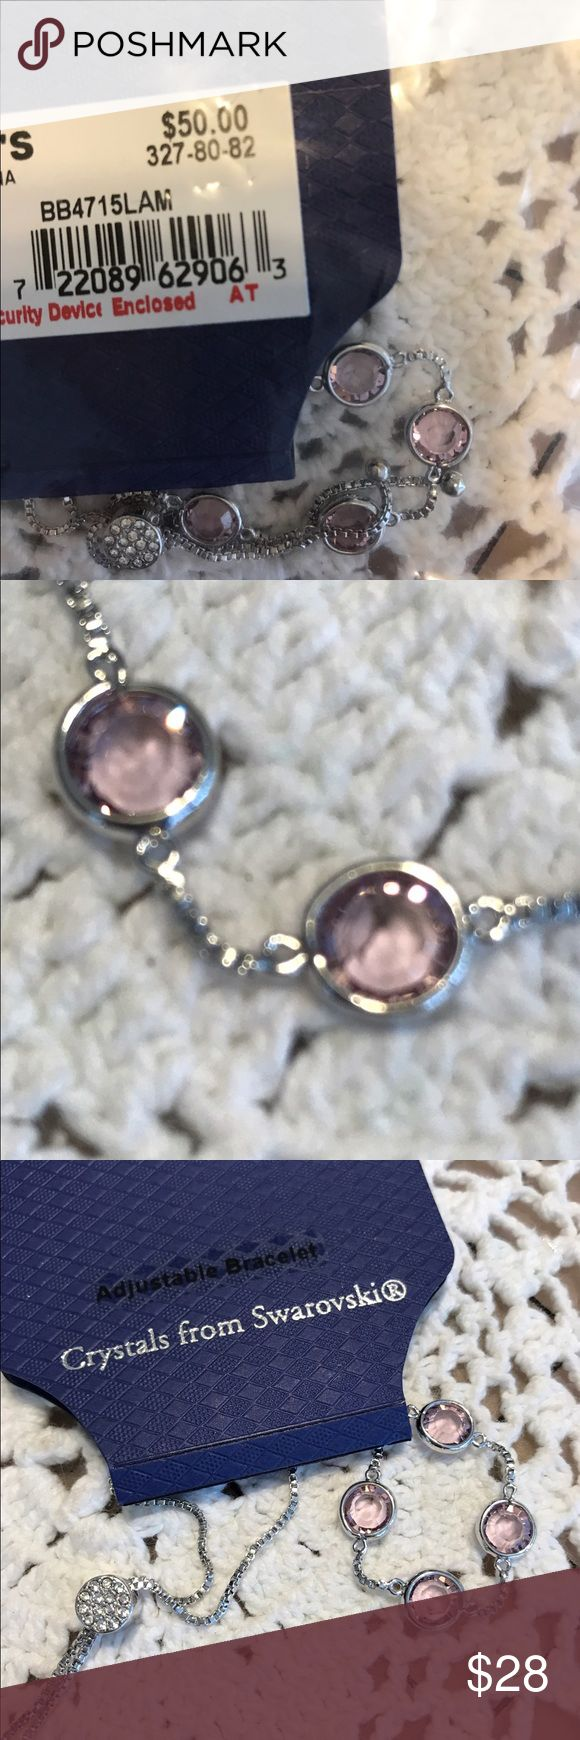 """NWT """"Brilliance"""" Adjustable bracelet NWT Adjustable bracelet from Brilliance with crystals from Swarovski. Adjusts by pulling on two ends. Expands 8"""" to as small as you want.  Light Purple. Please look at pictures and ask any questions before you make an offer. Thanks for your consideration ! ❤️👩🏻🎨 Brilliance Jewelry Bracelets"""